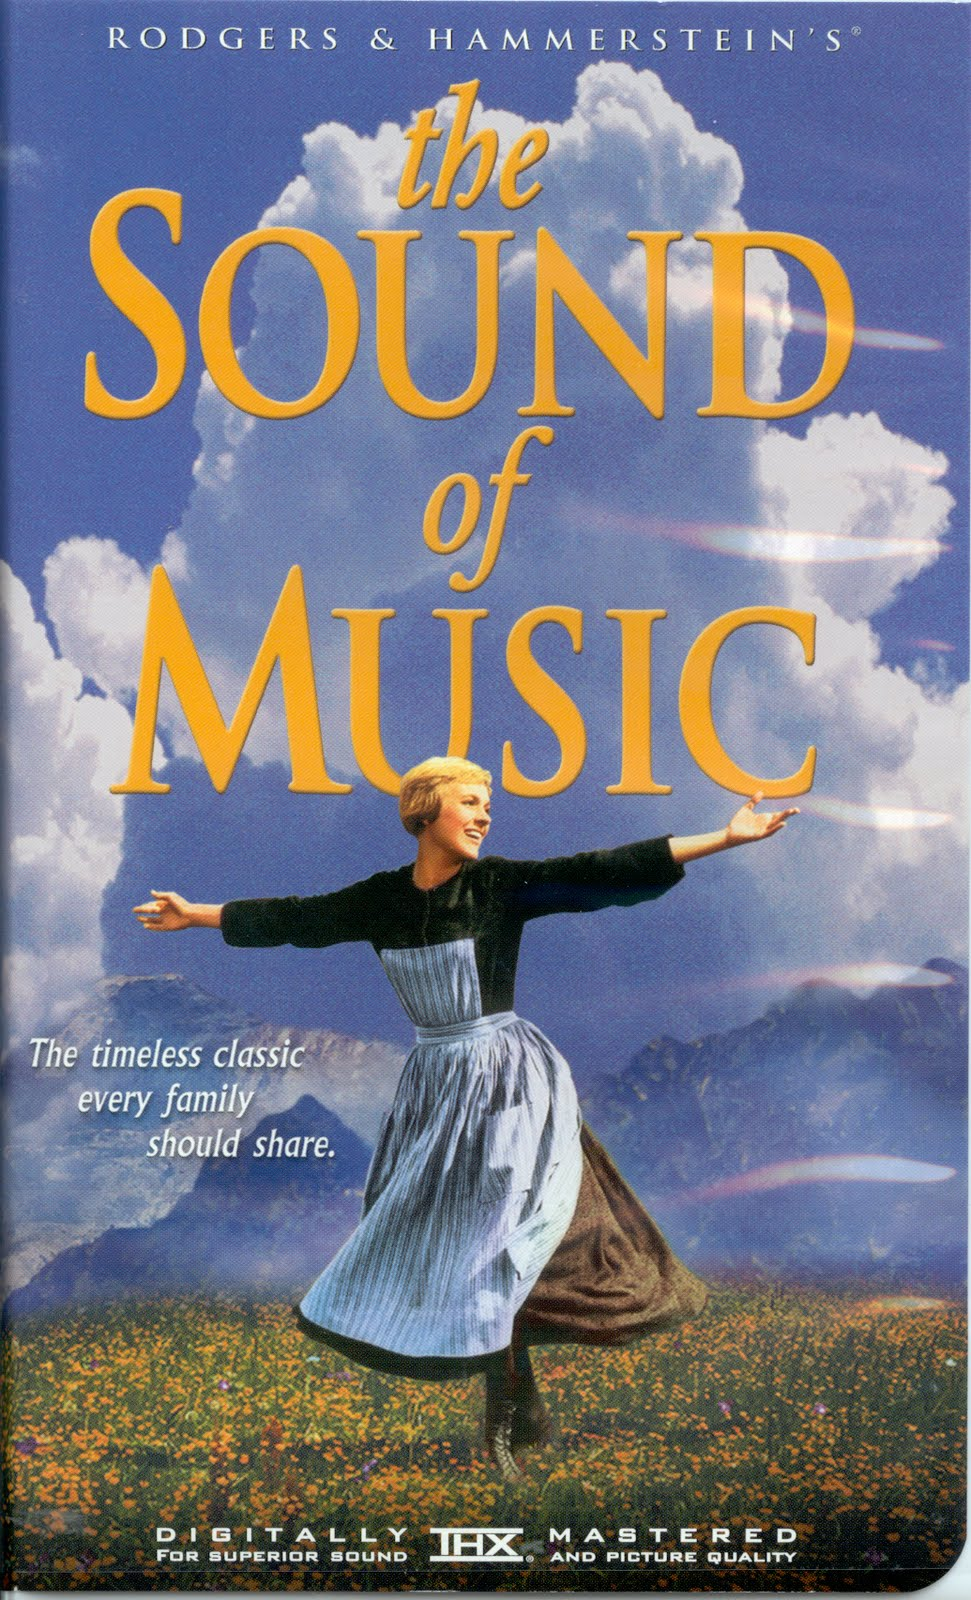 From movie music picture sound